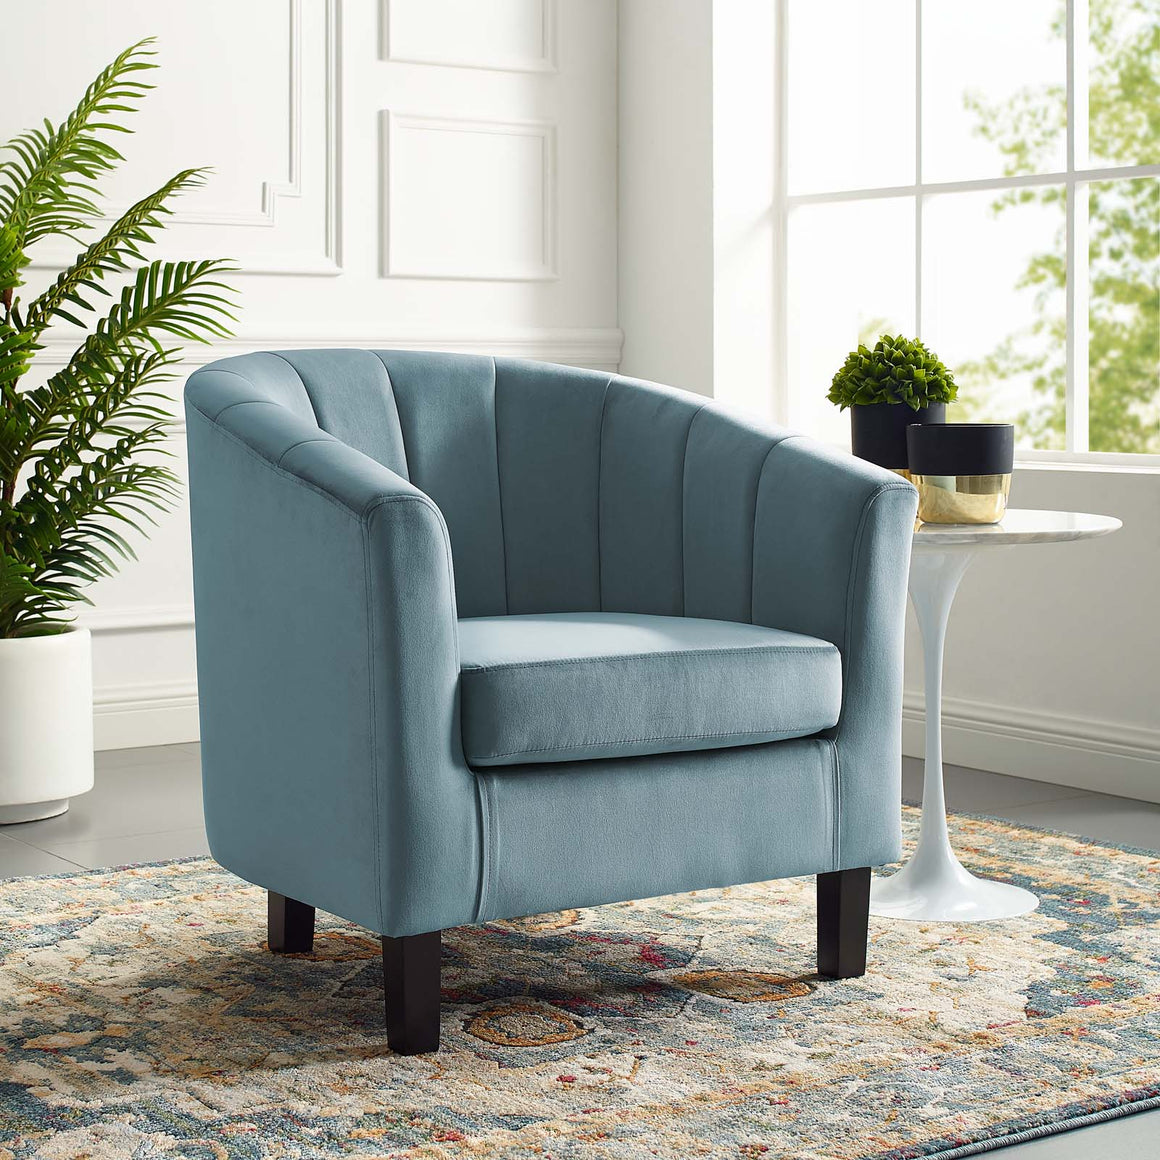 PROSPECT CHANNEL TUFTED UPHOLSTERED VELVET ARMCHAIR